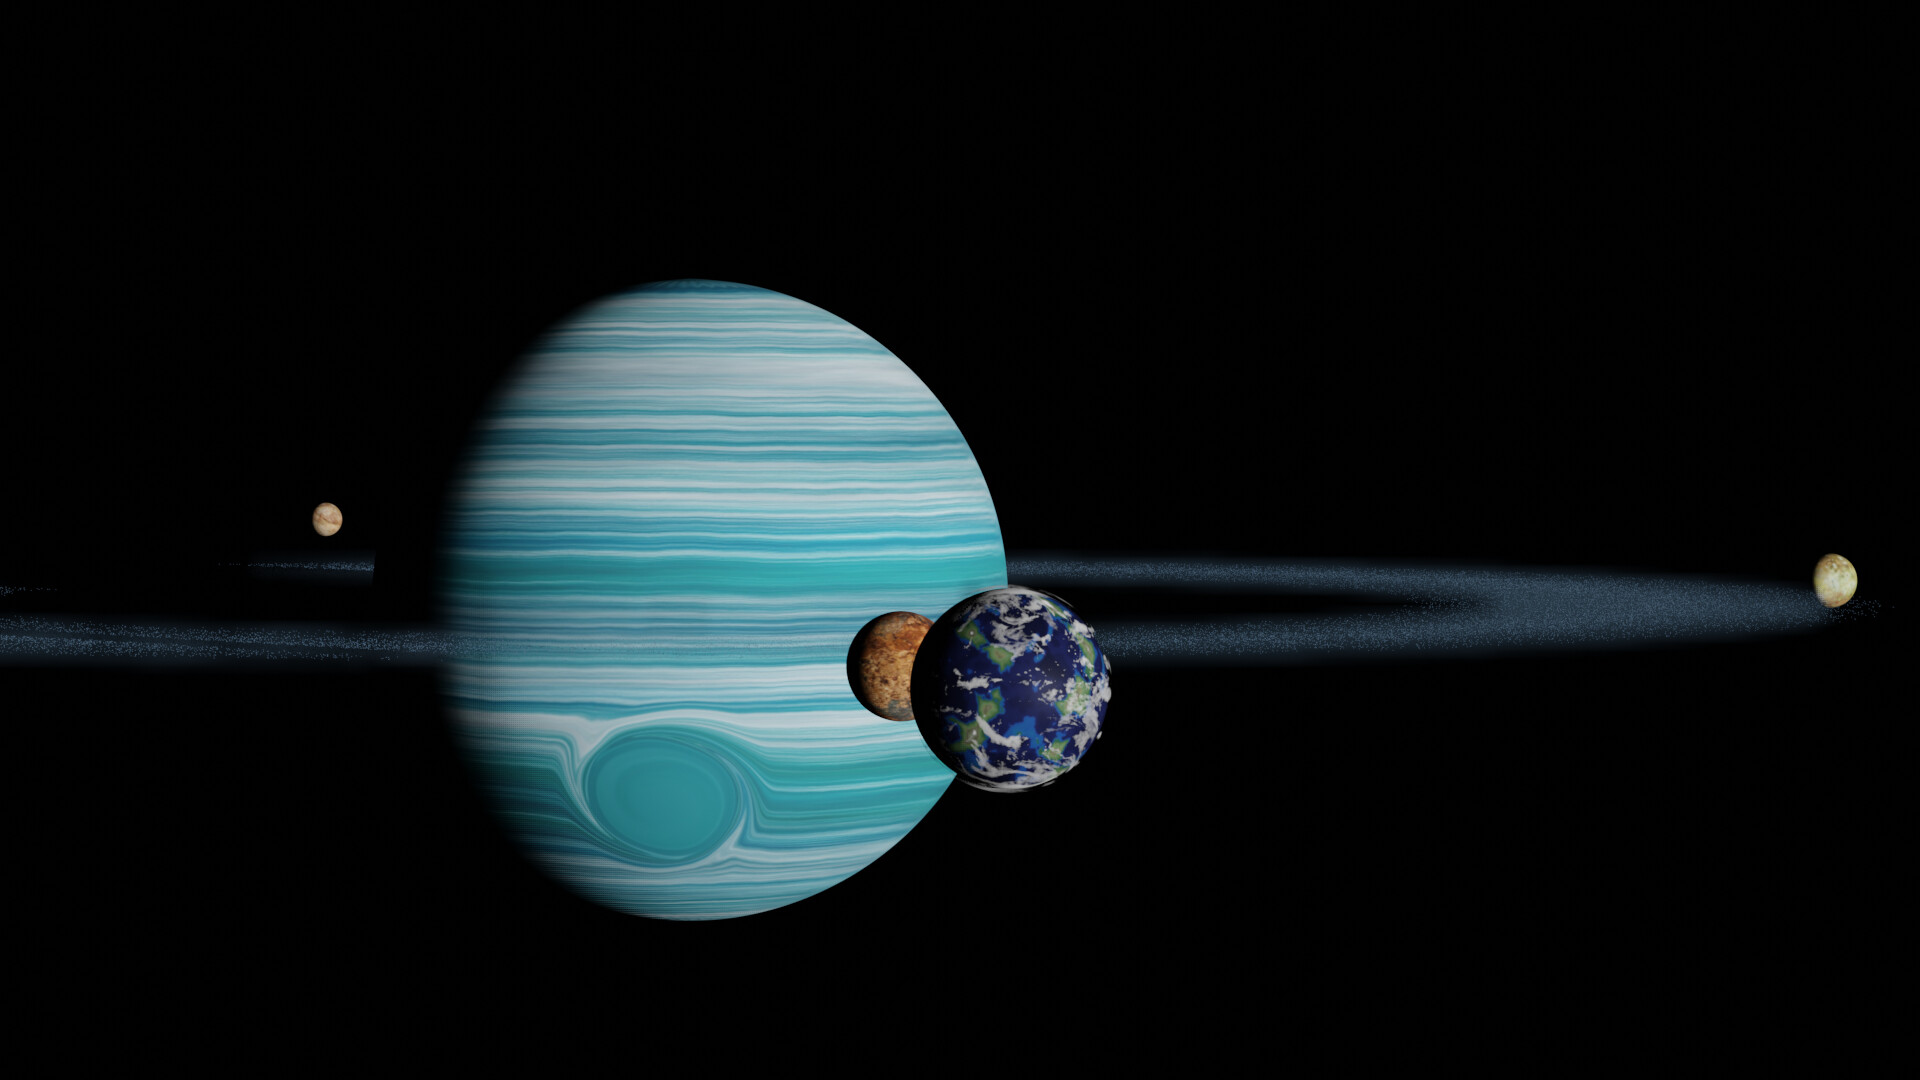 Shinseiko kuromatsu awesome gas giant roid rings 6 with volumetric dust and moons